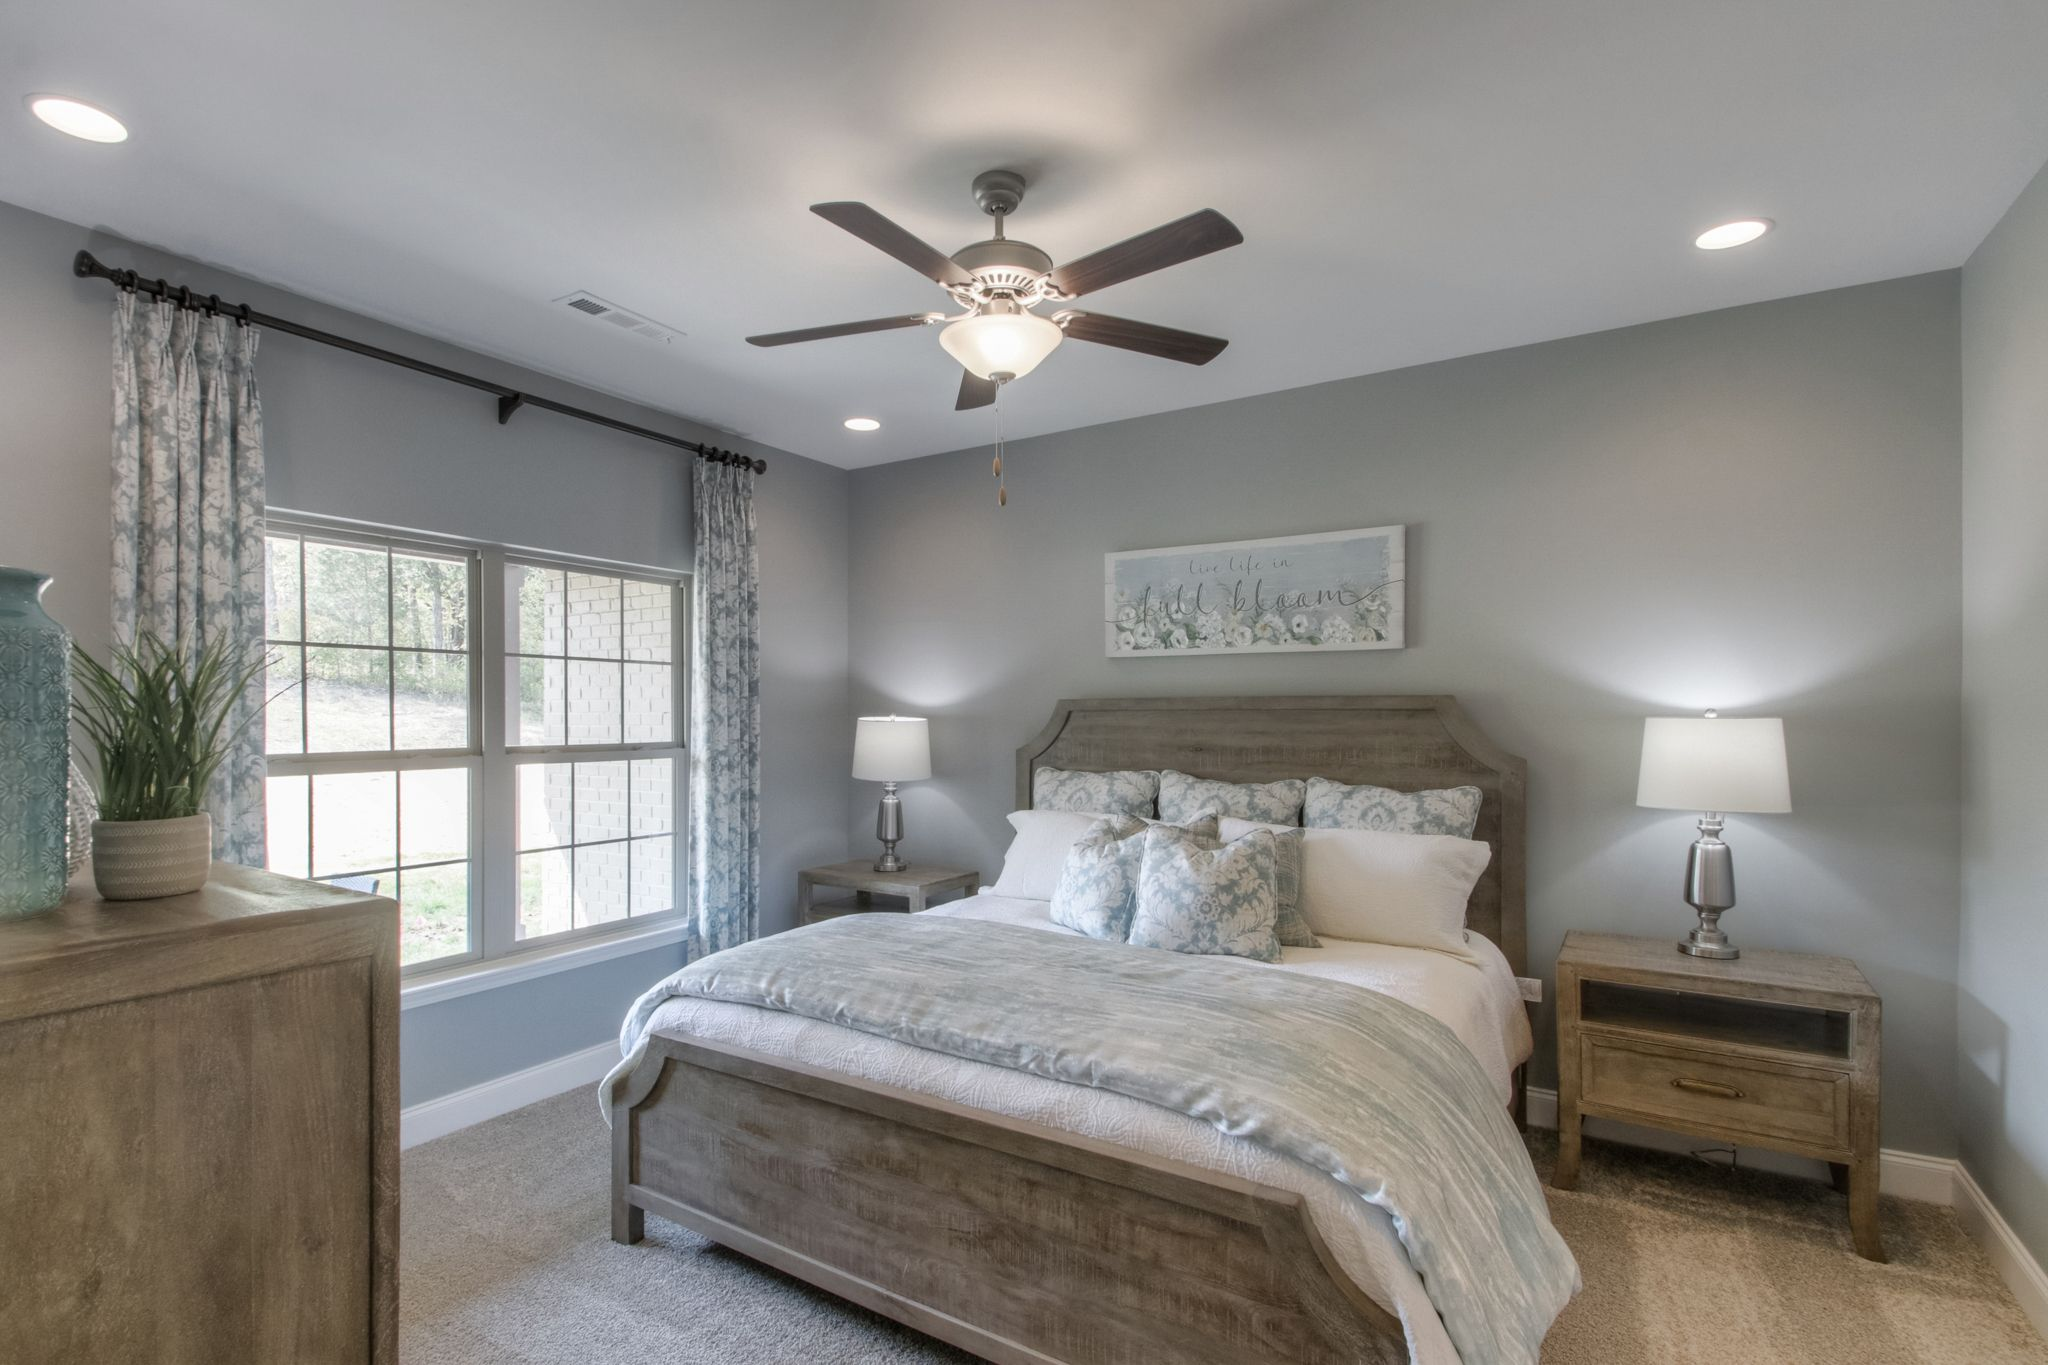 Bedroom featured in The Arlington By Goodall Homes in Nashville, TN